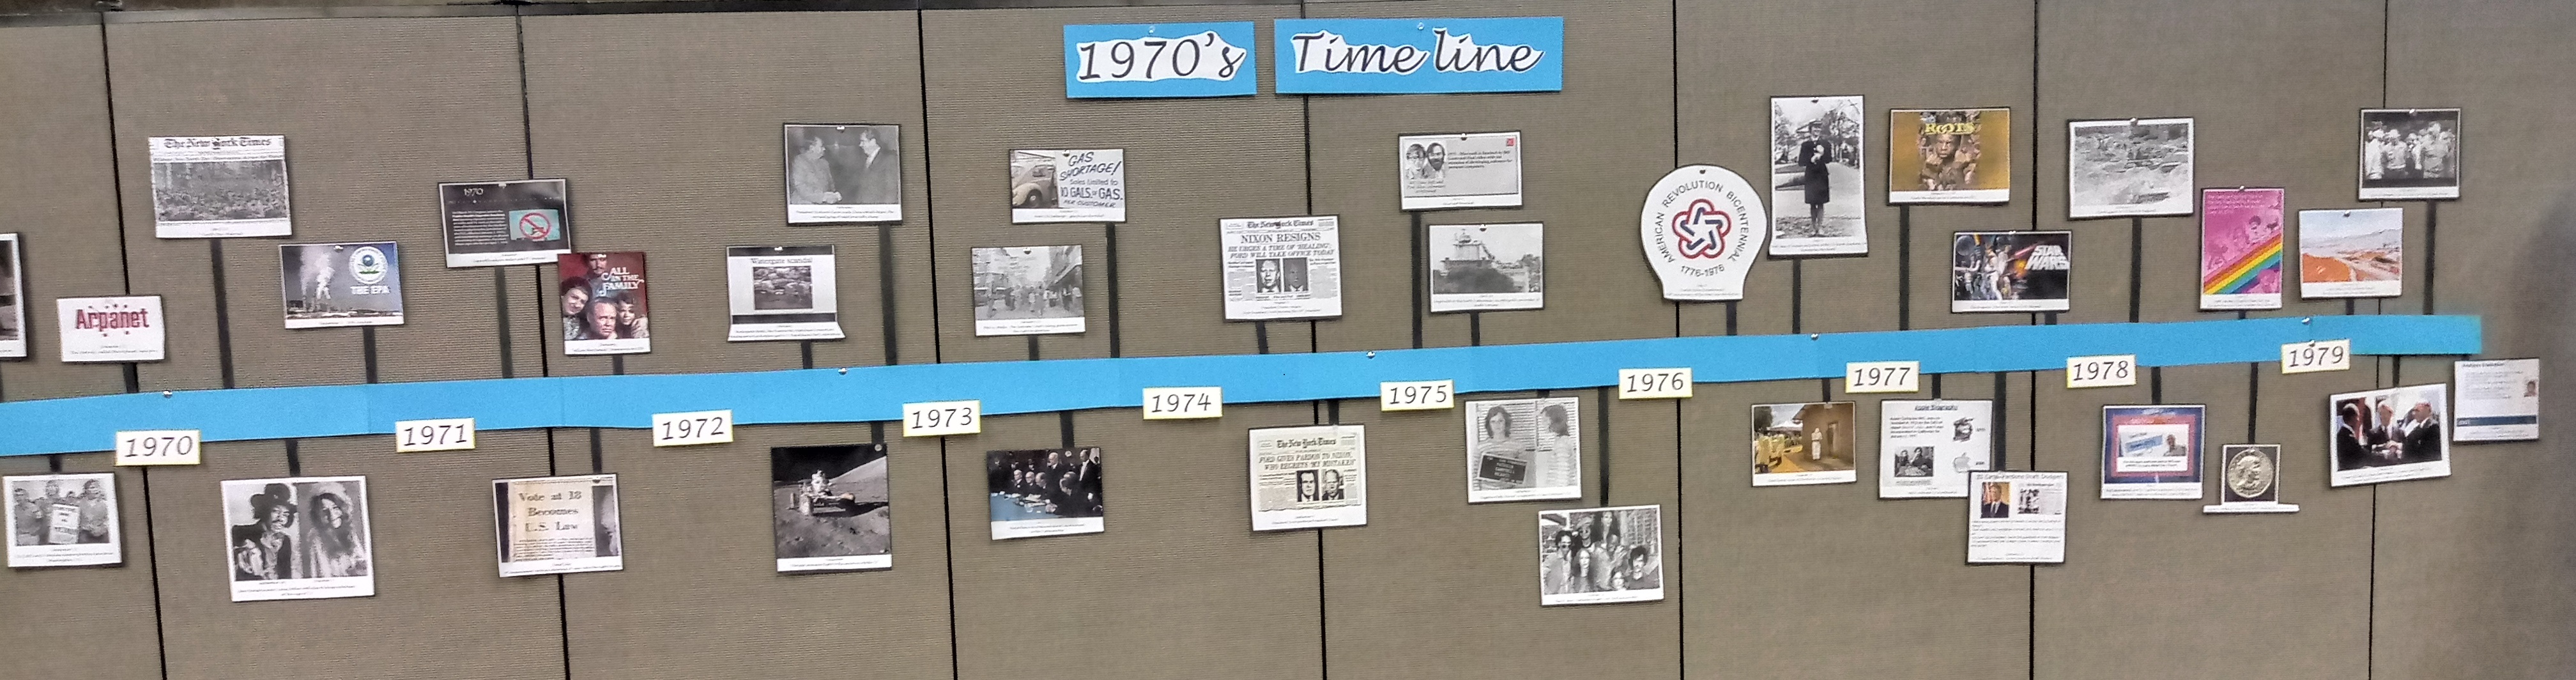 Rest of the World 1970s timeline